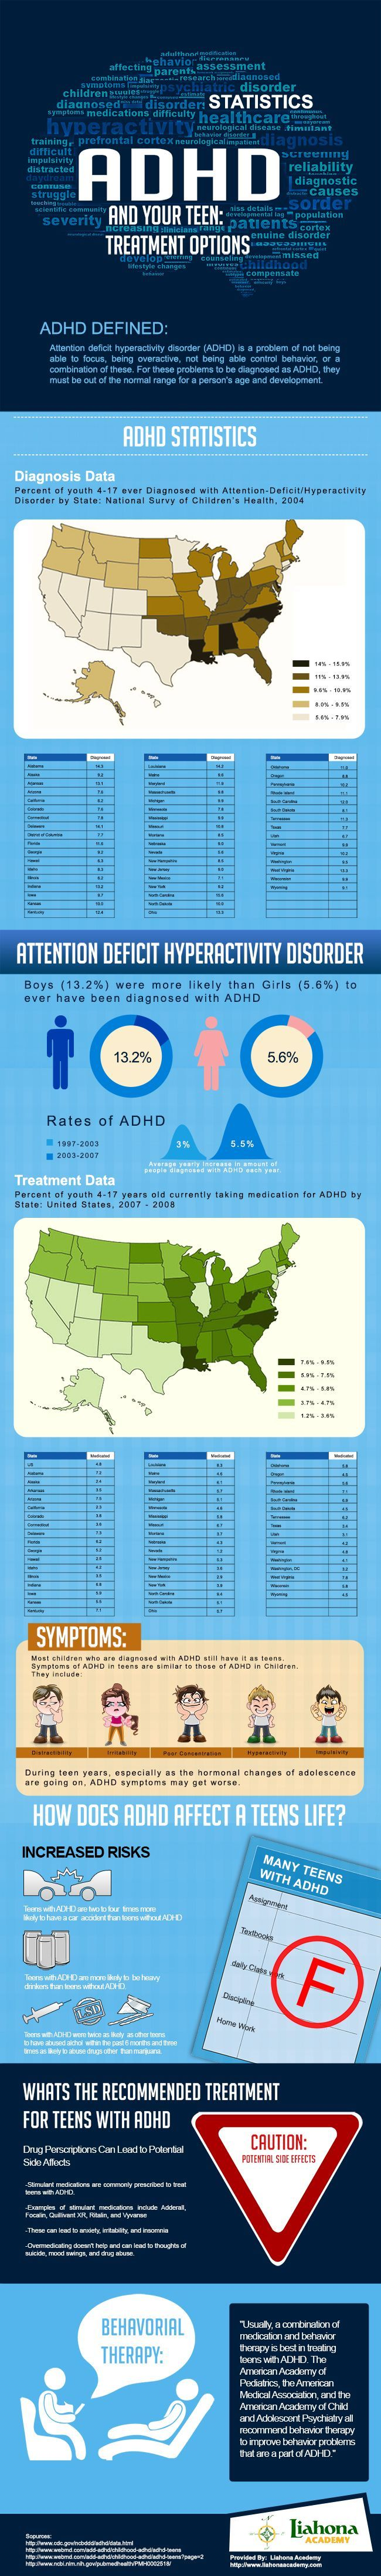 Colour therapy for hyperactivity - Adhd Infographic